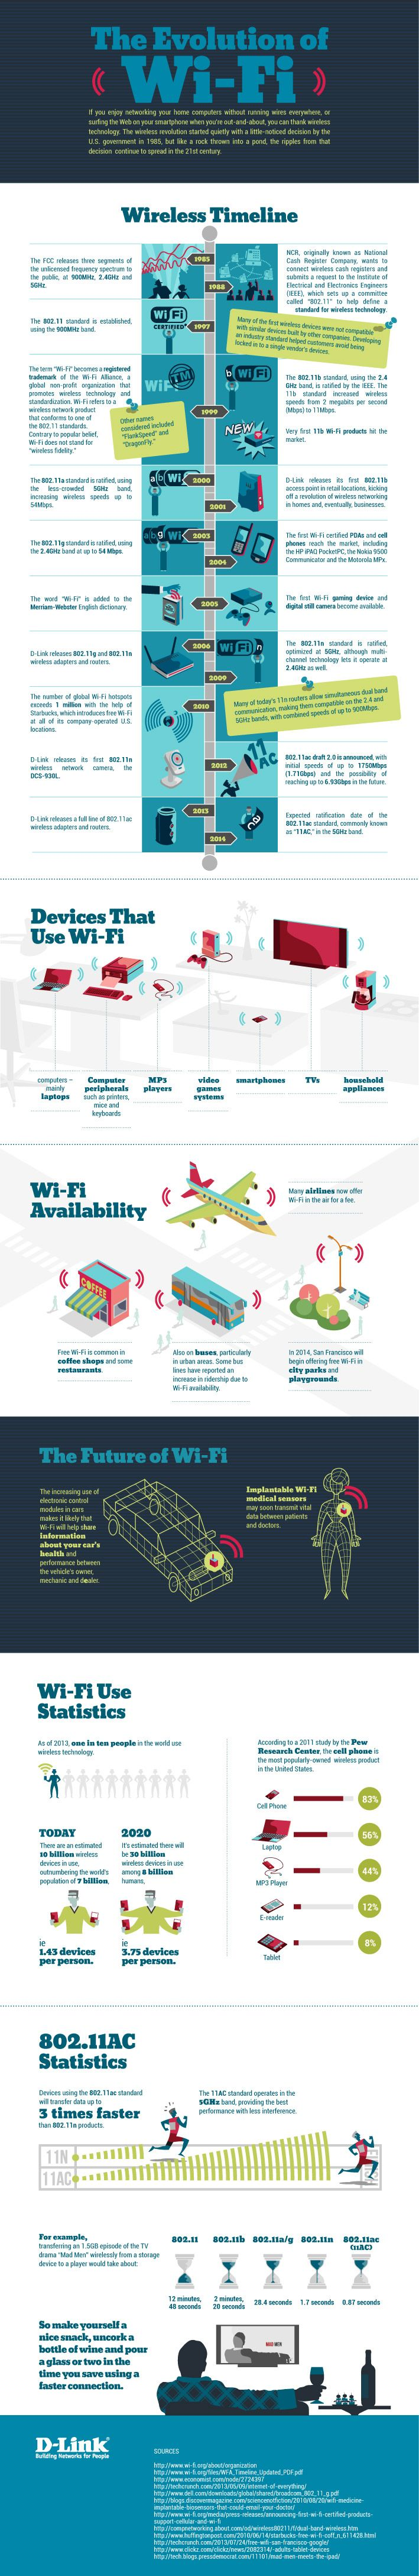 The Evolution of Wi-Fi | D-Link Resource Center